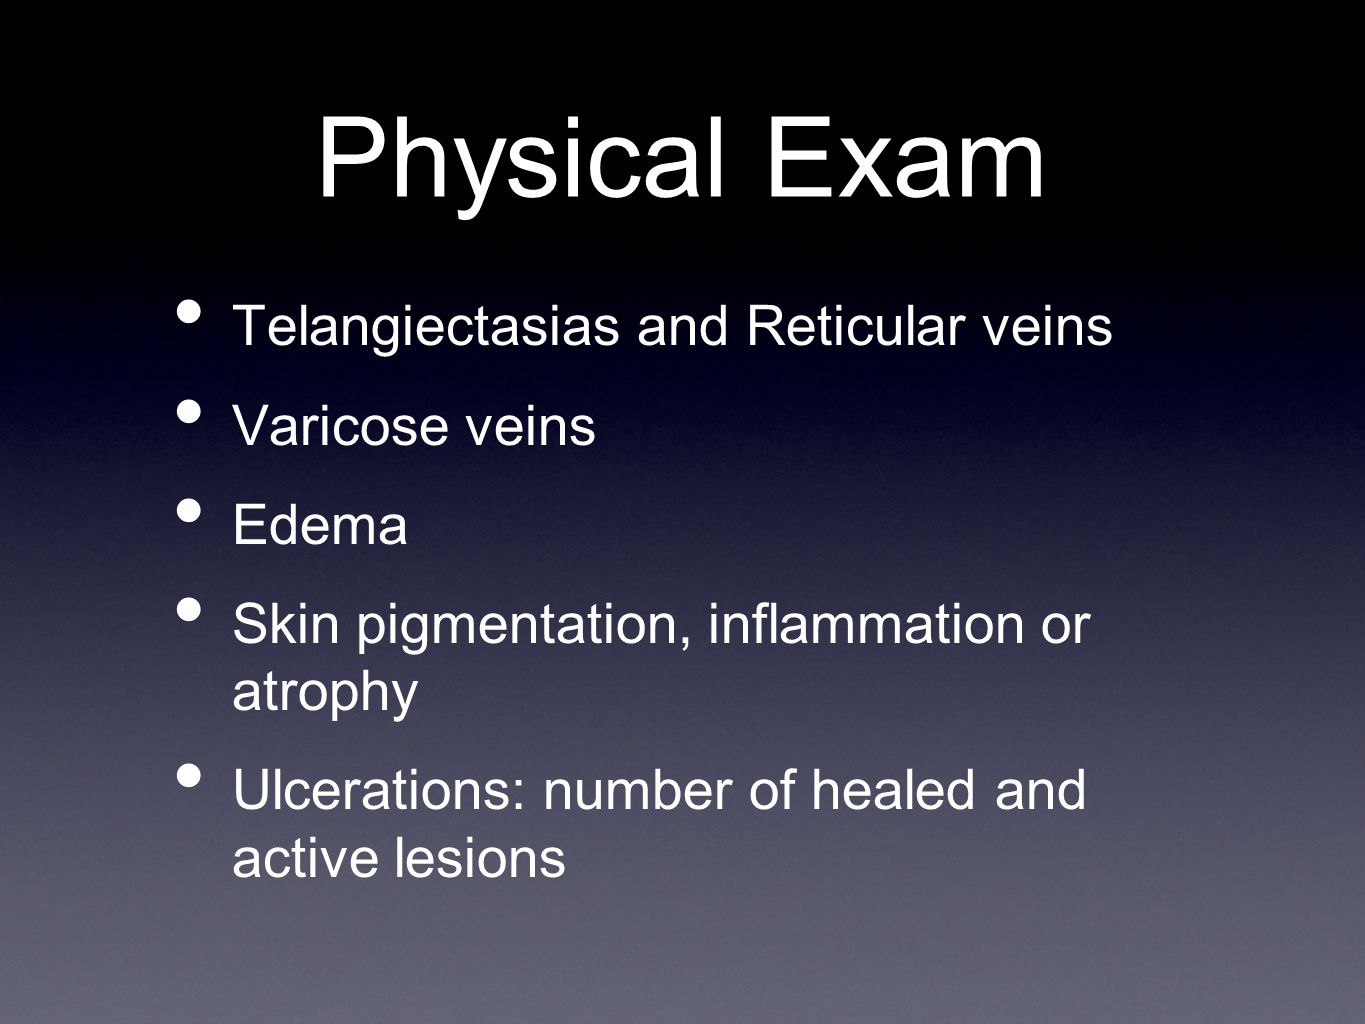 Physical Exam Telangiectasias and Reticular veins Varicose veins Edema Skin pigmentation, inflammation or atrophy Ulcerations: number of healed and active lesions